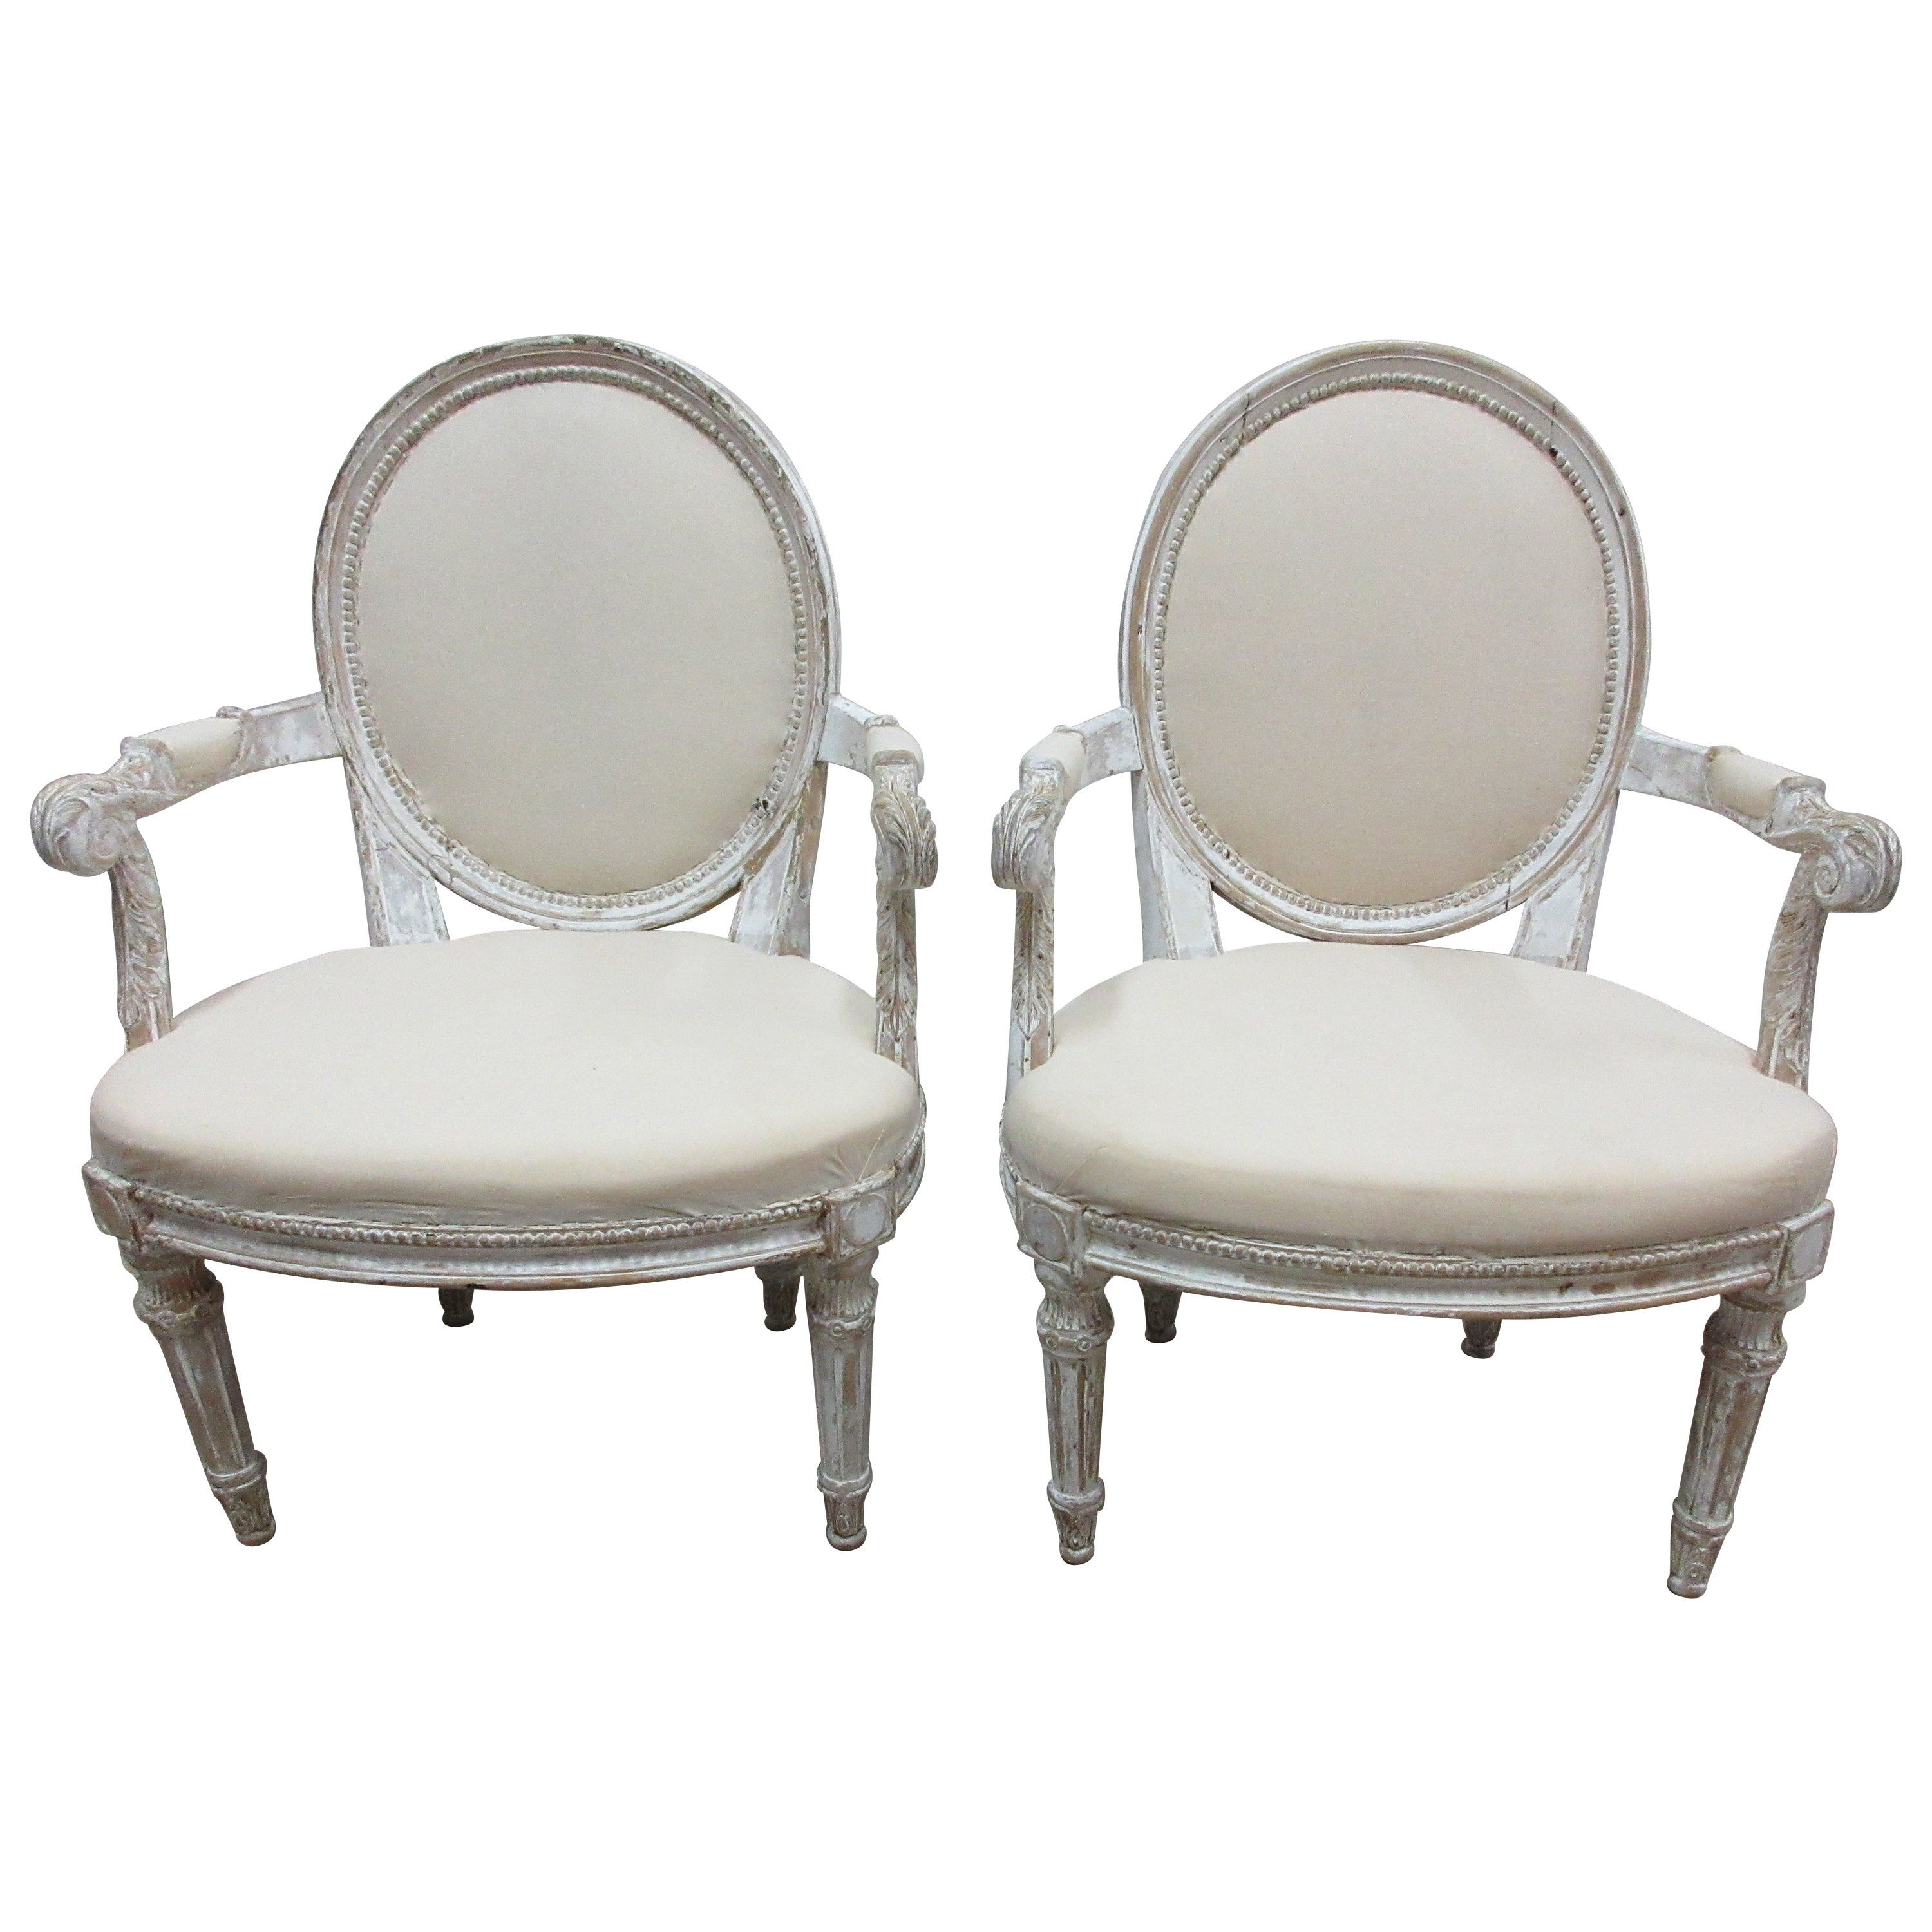 Original Painted Swedish Gustavian Armchairs